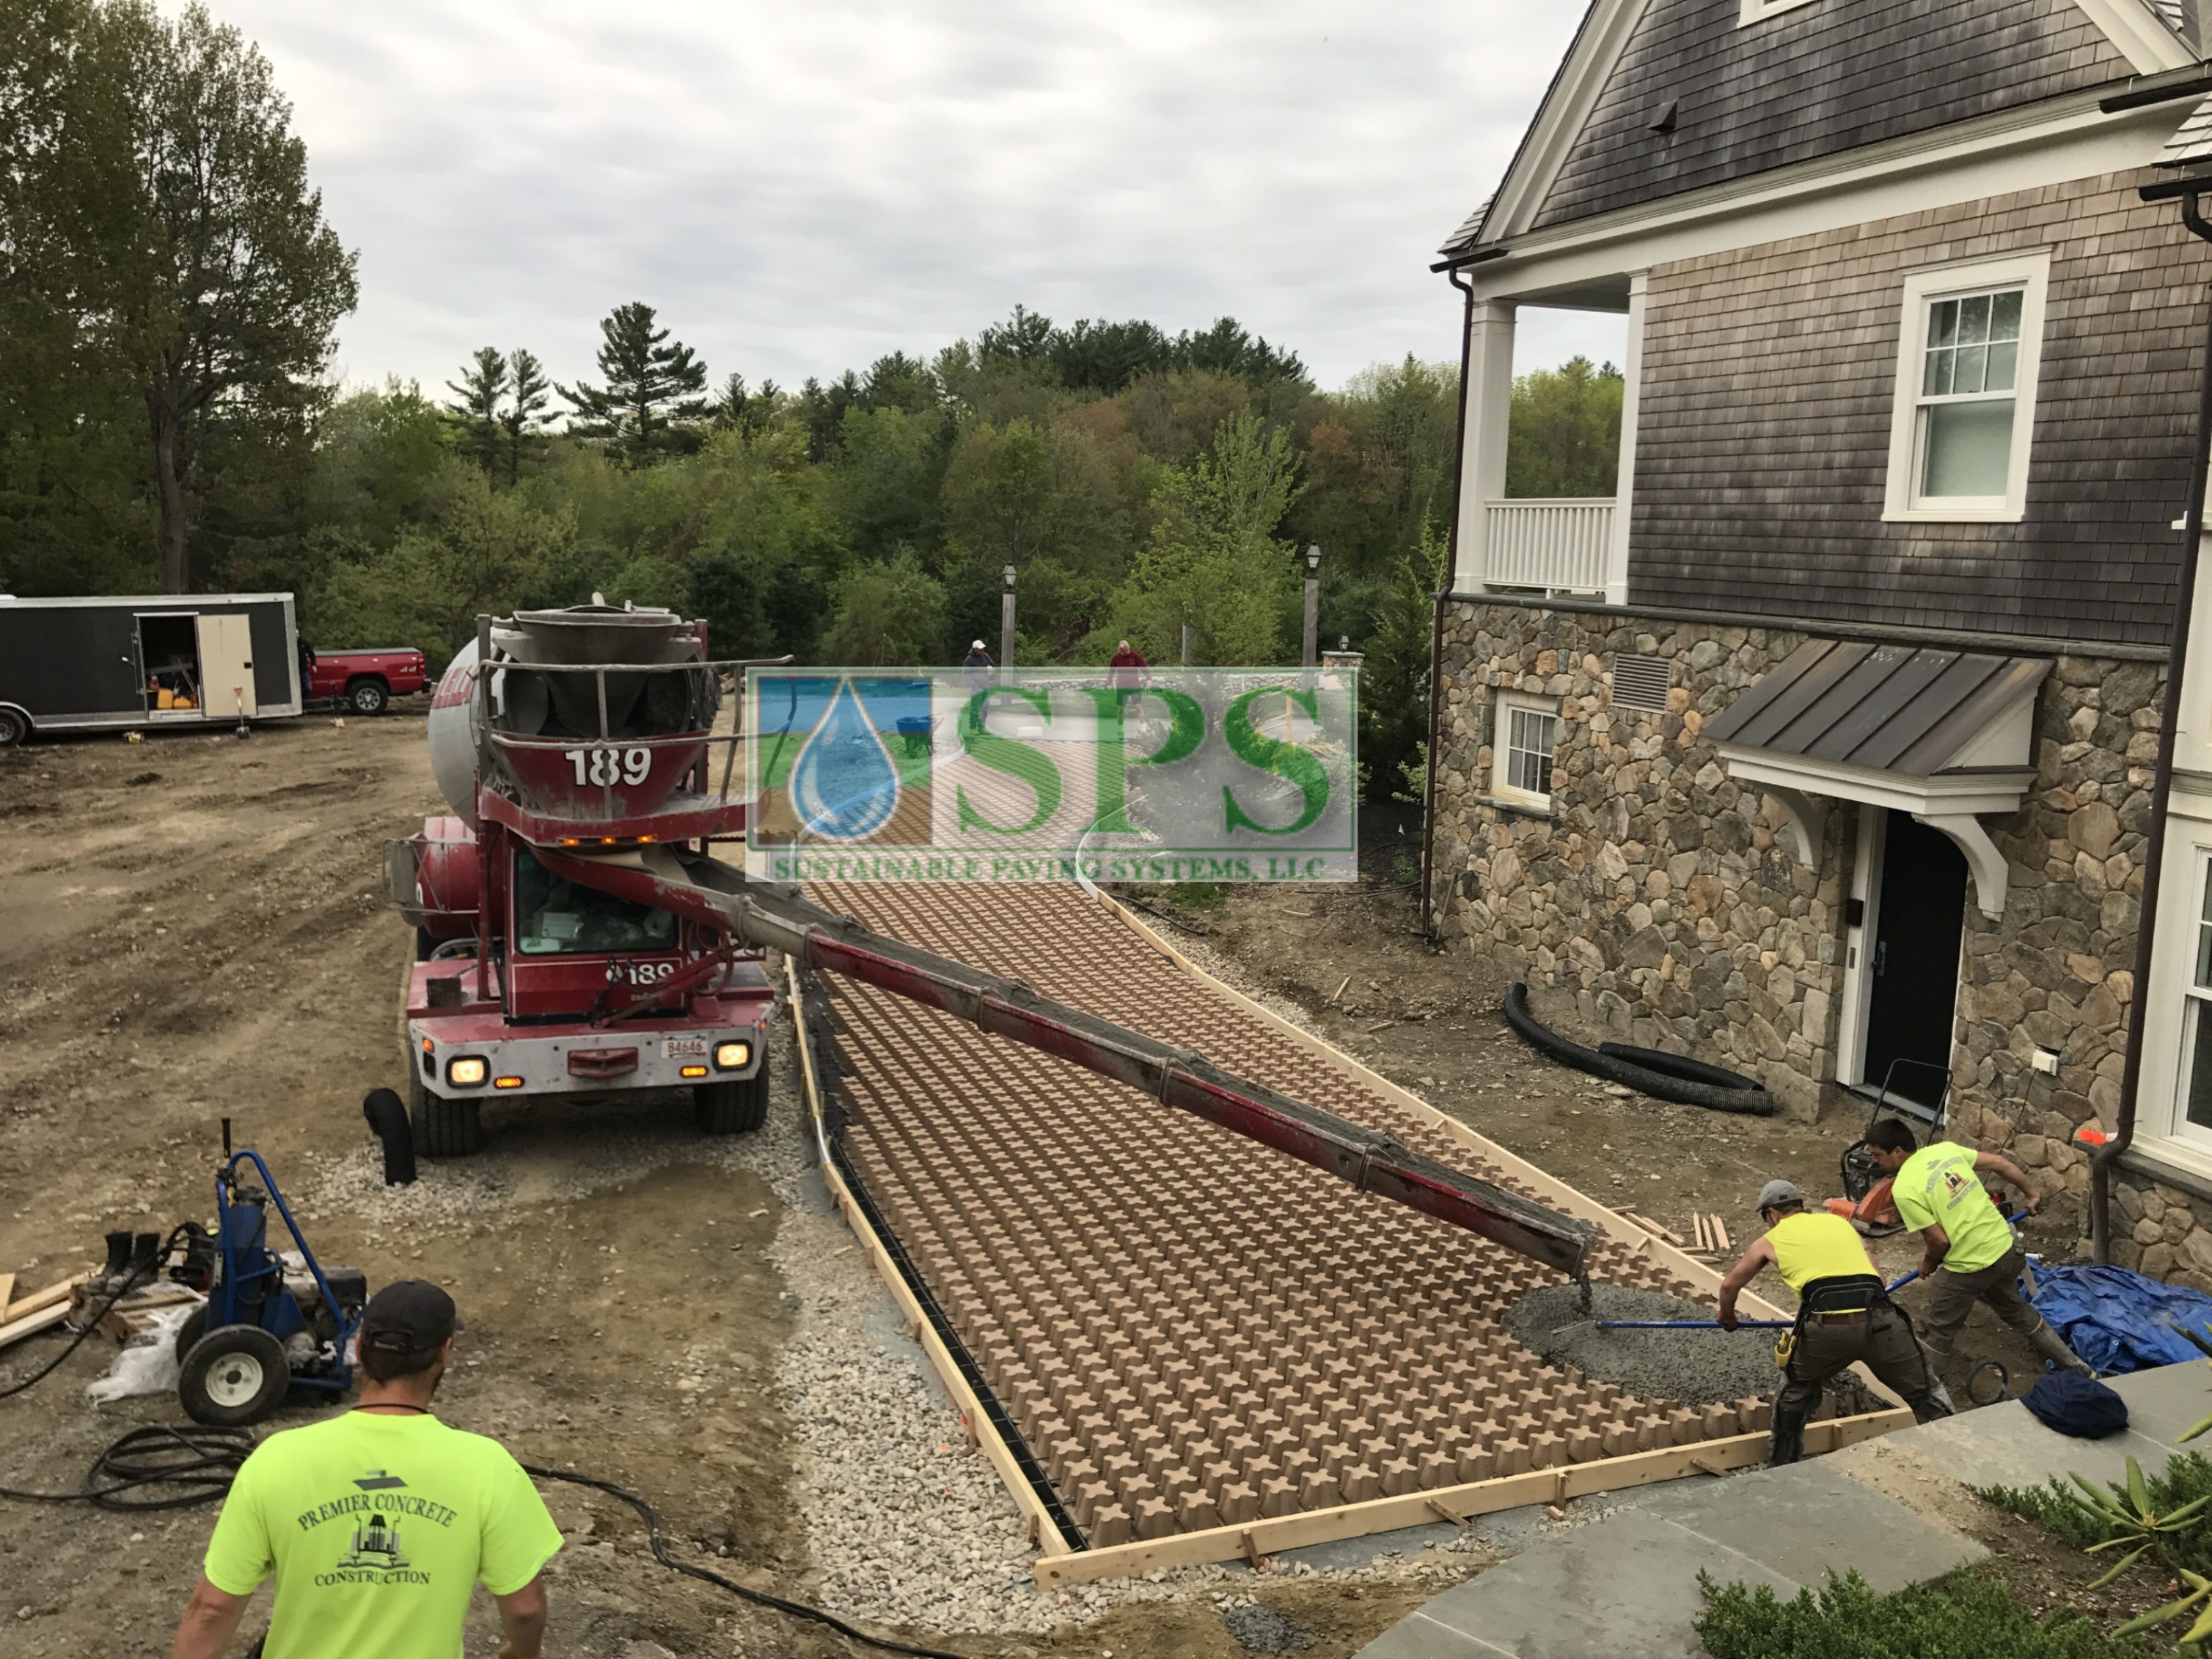 Concrete pour of Pervious Grasscrete Concrete onto the moulded pulp formers, being installed by Premier Concrete Construction at an Essex County estate in MA, with a view of the voids and the rebar reinforcement to provide strength for any heavy vehicles.